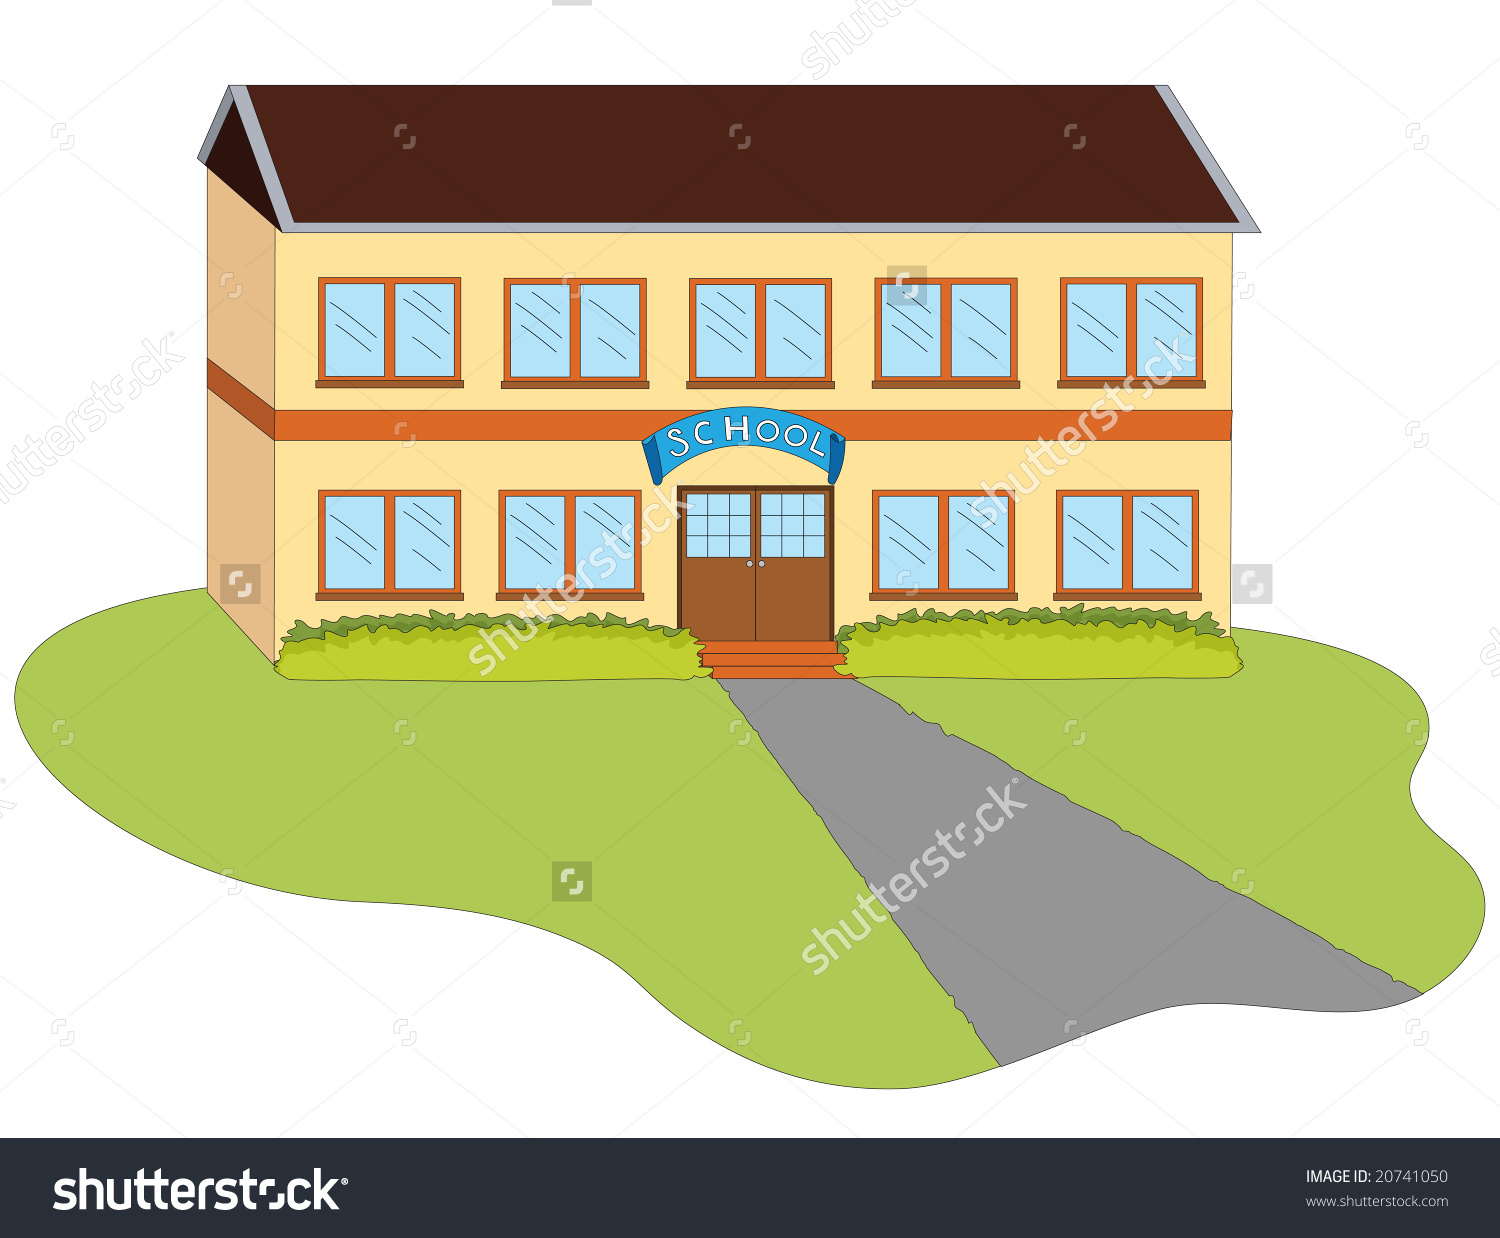 Entrance To A School Building On A White Background Stock Photo.